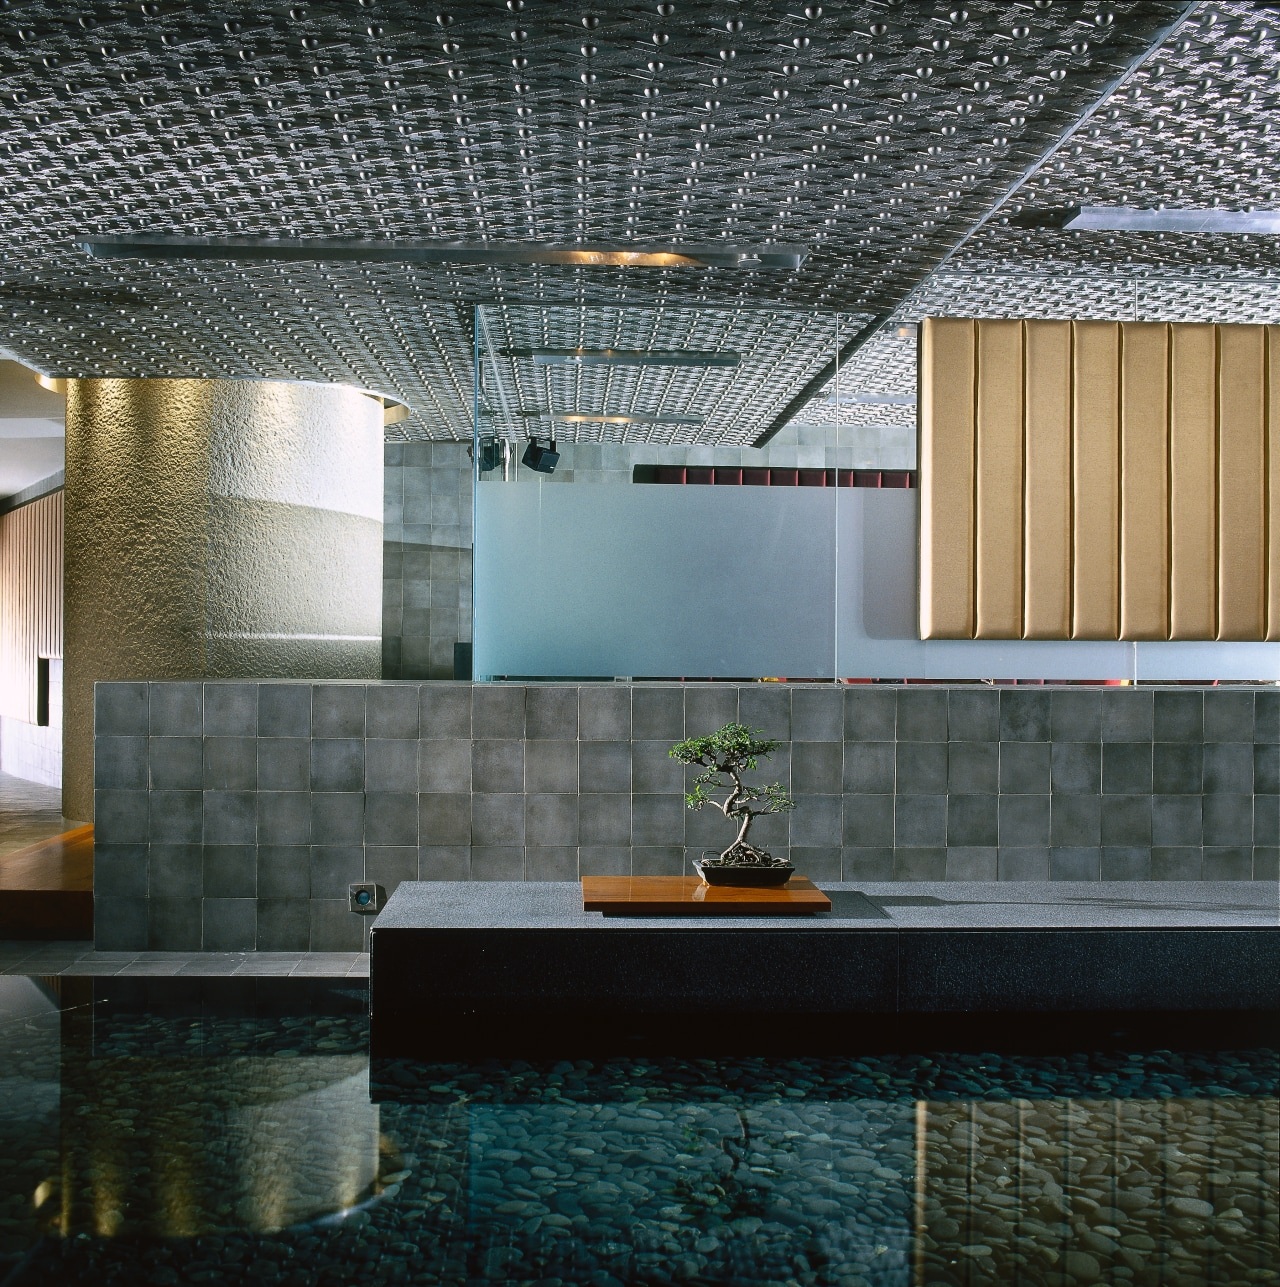 Indoor pond with stones and grey walls, and architecture, ceiling, daylighting, interior design, lobby, black, gray